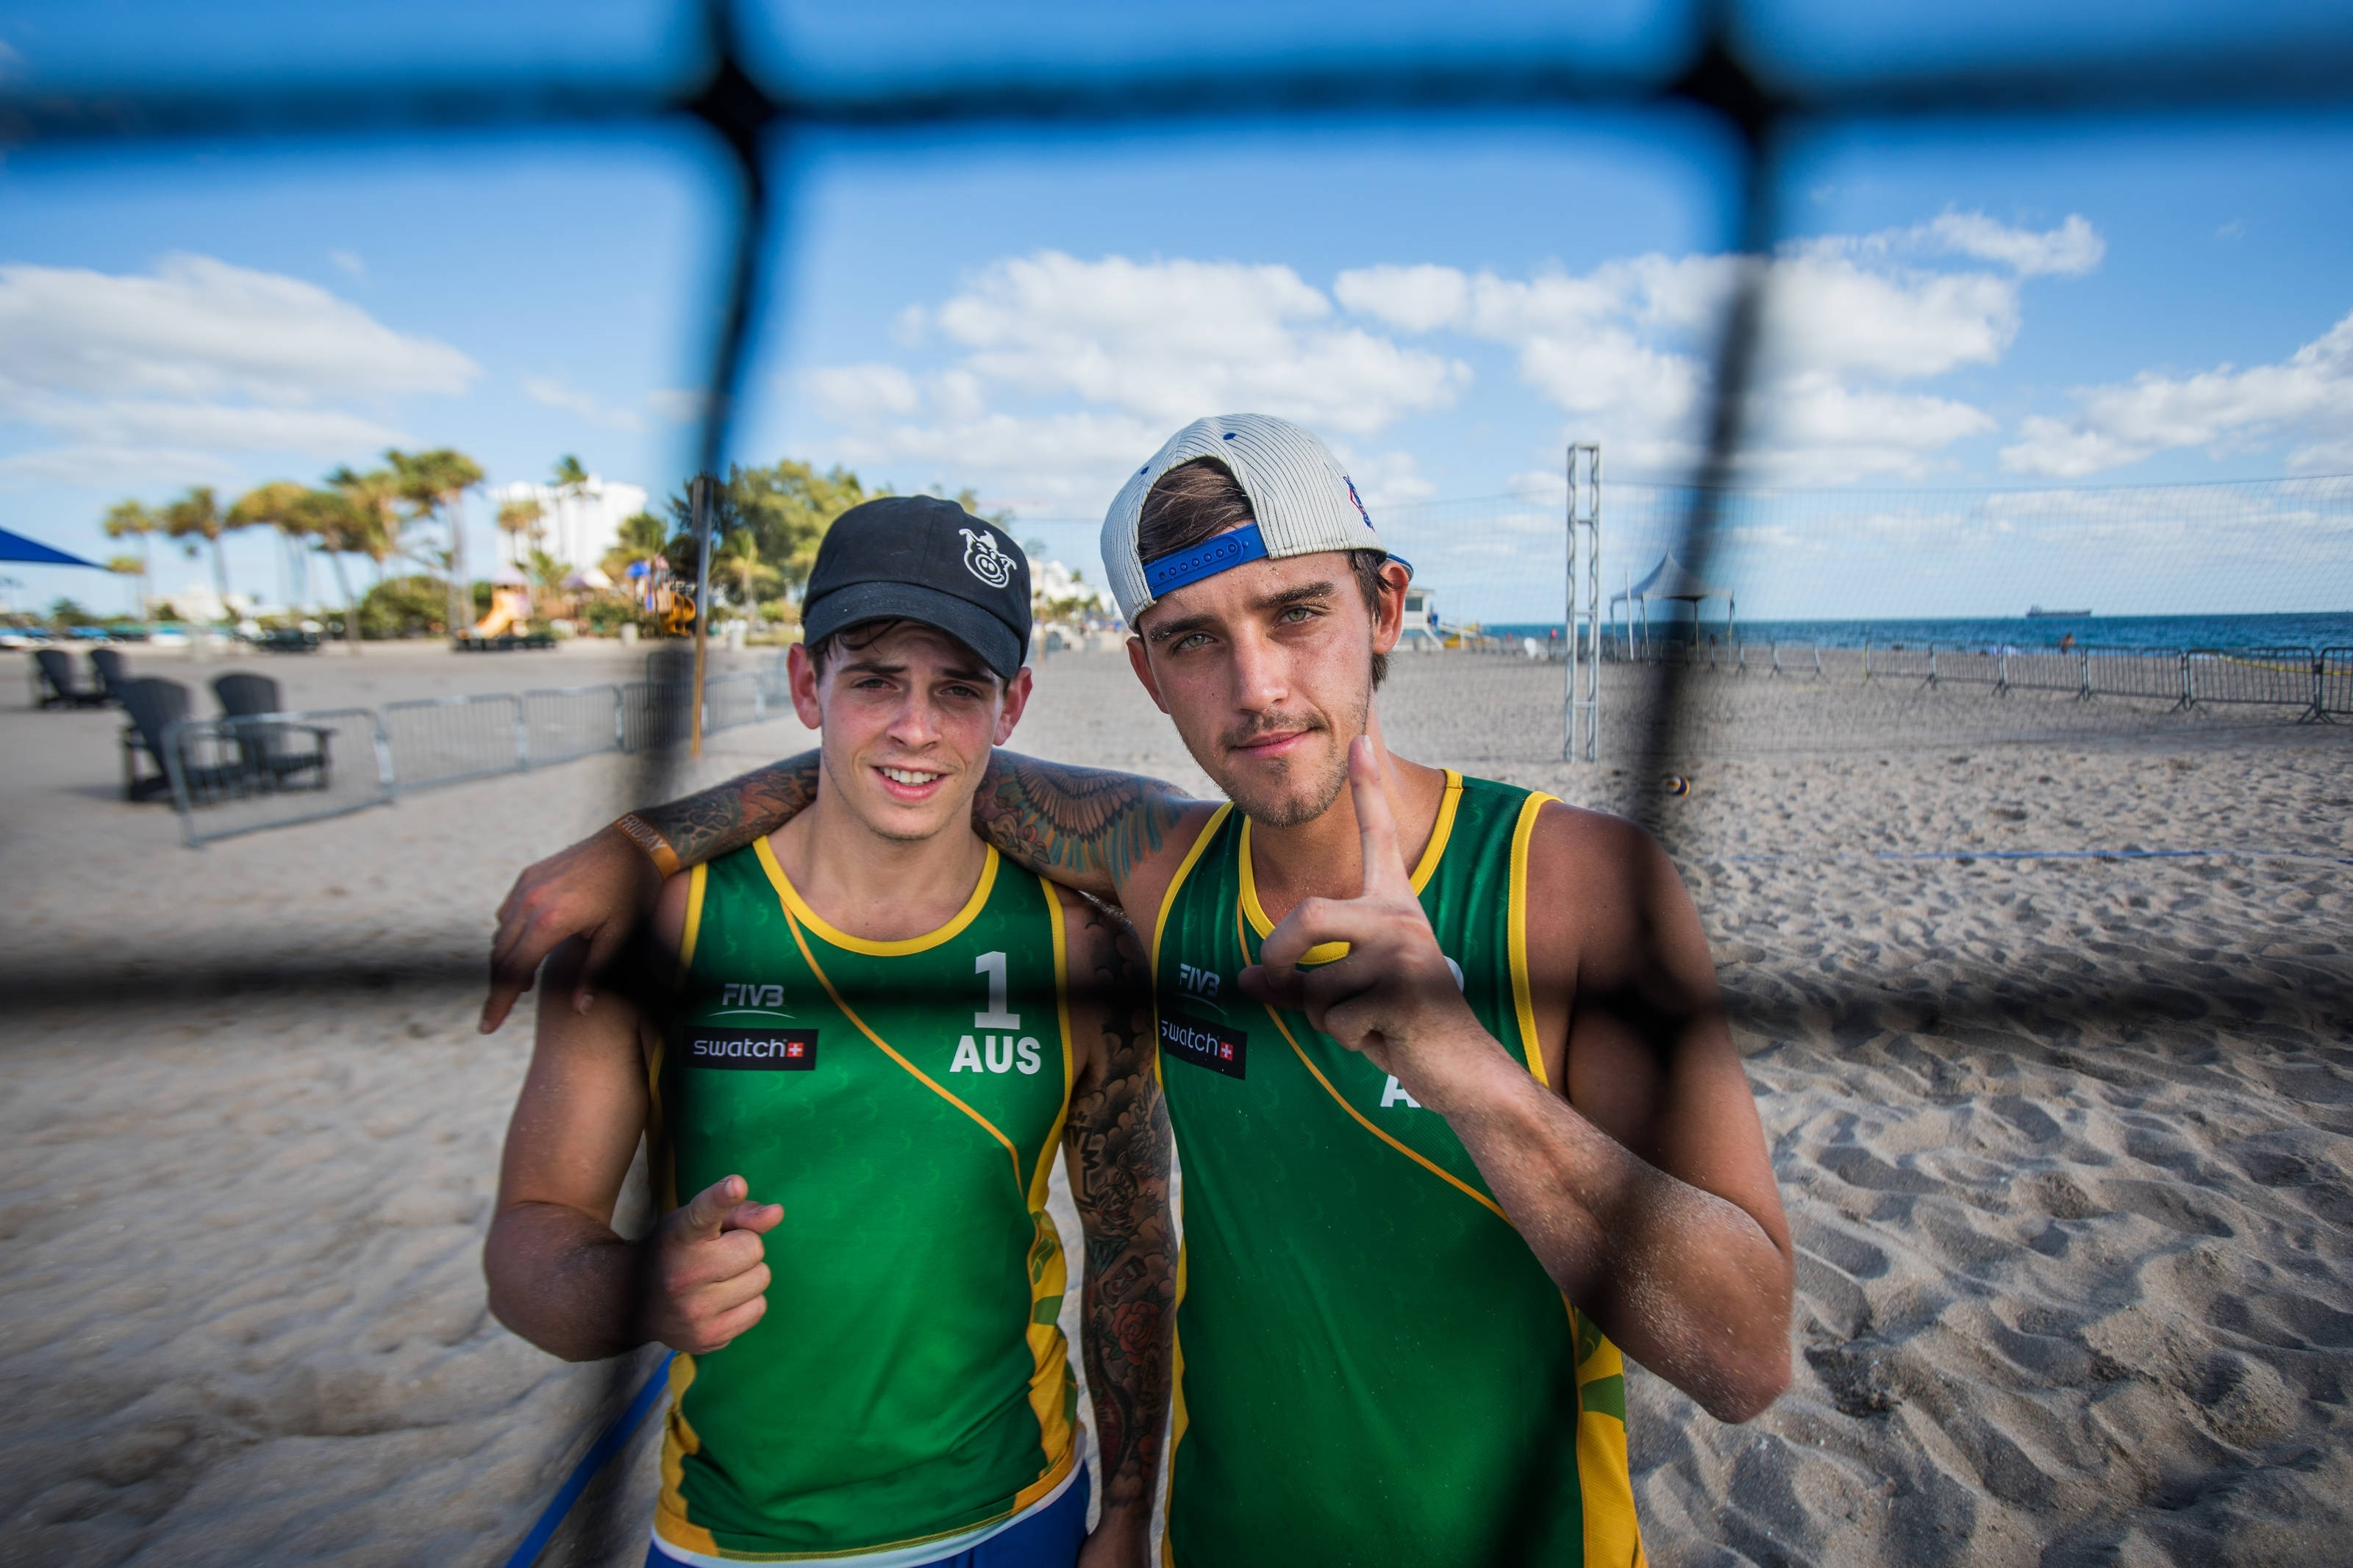 Beau Brooks (right) and Daniel Sayhounie on Fort Lauderdale Beach. Photocredit: Ian Witlen.